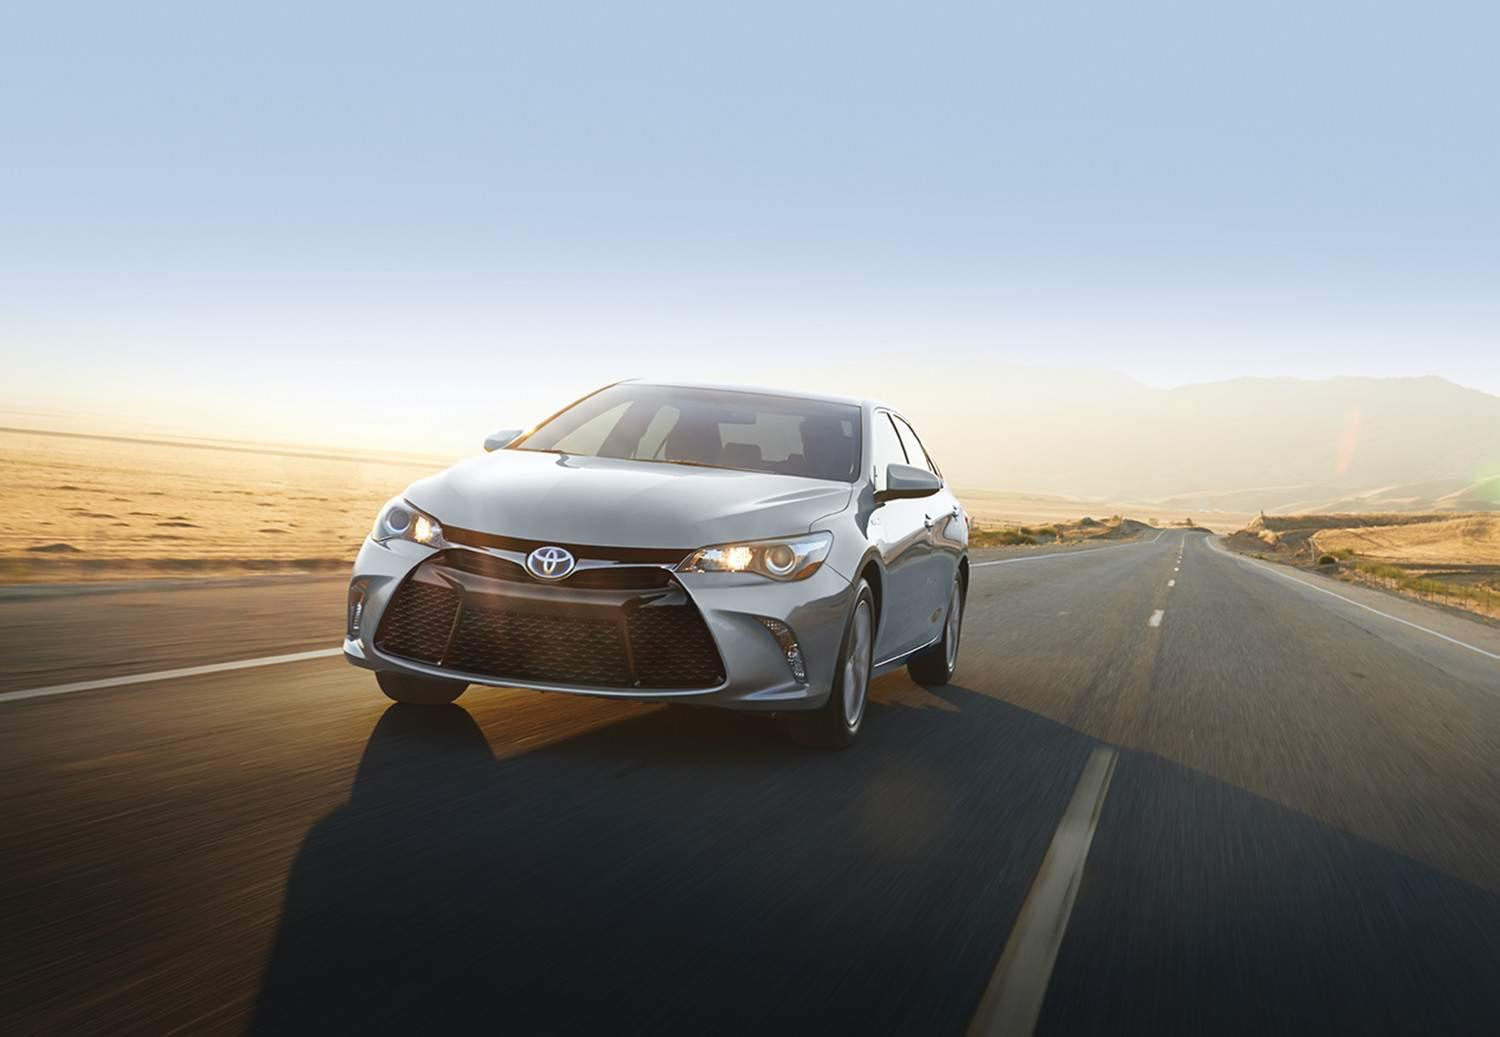 2017 Camry Hybrid Overview at SP Toyota